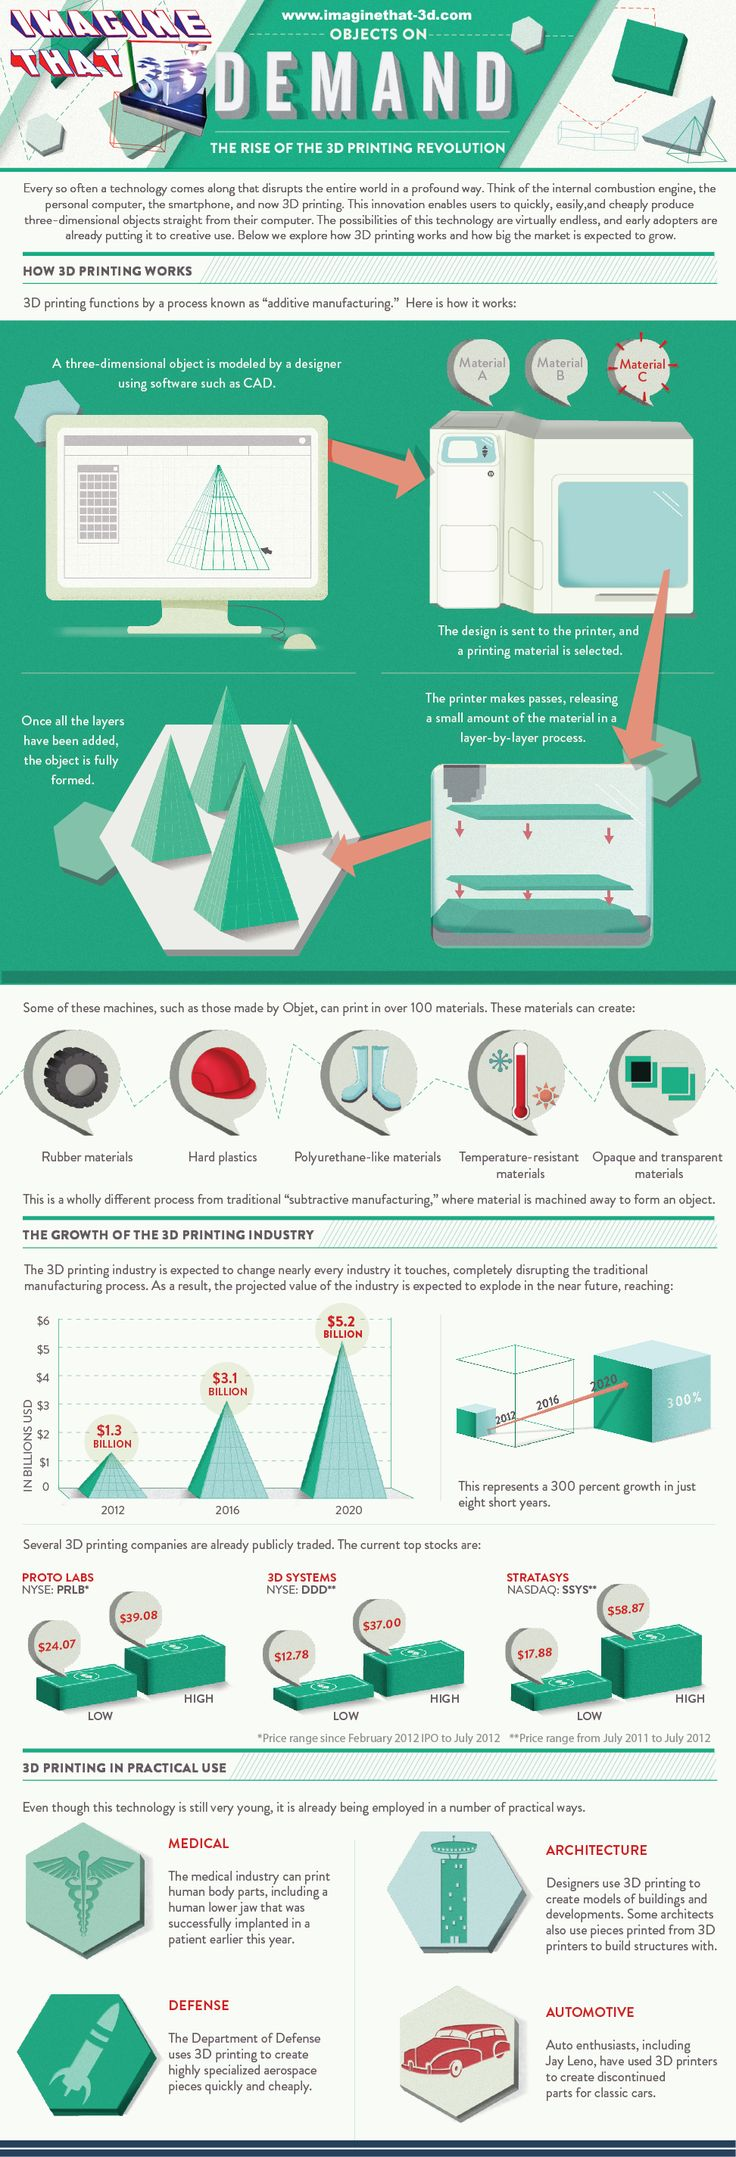 The Rise of 3D Printing